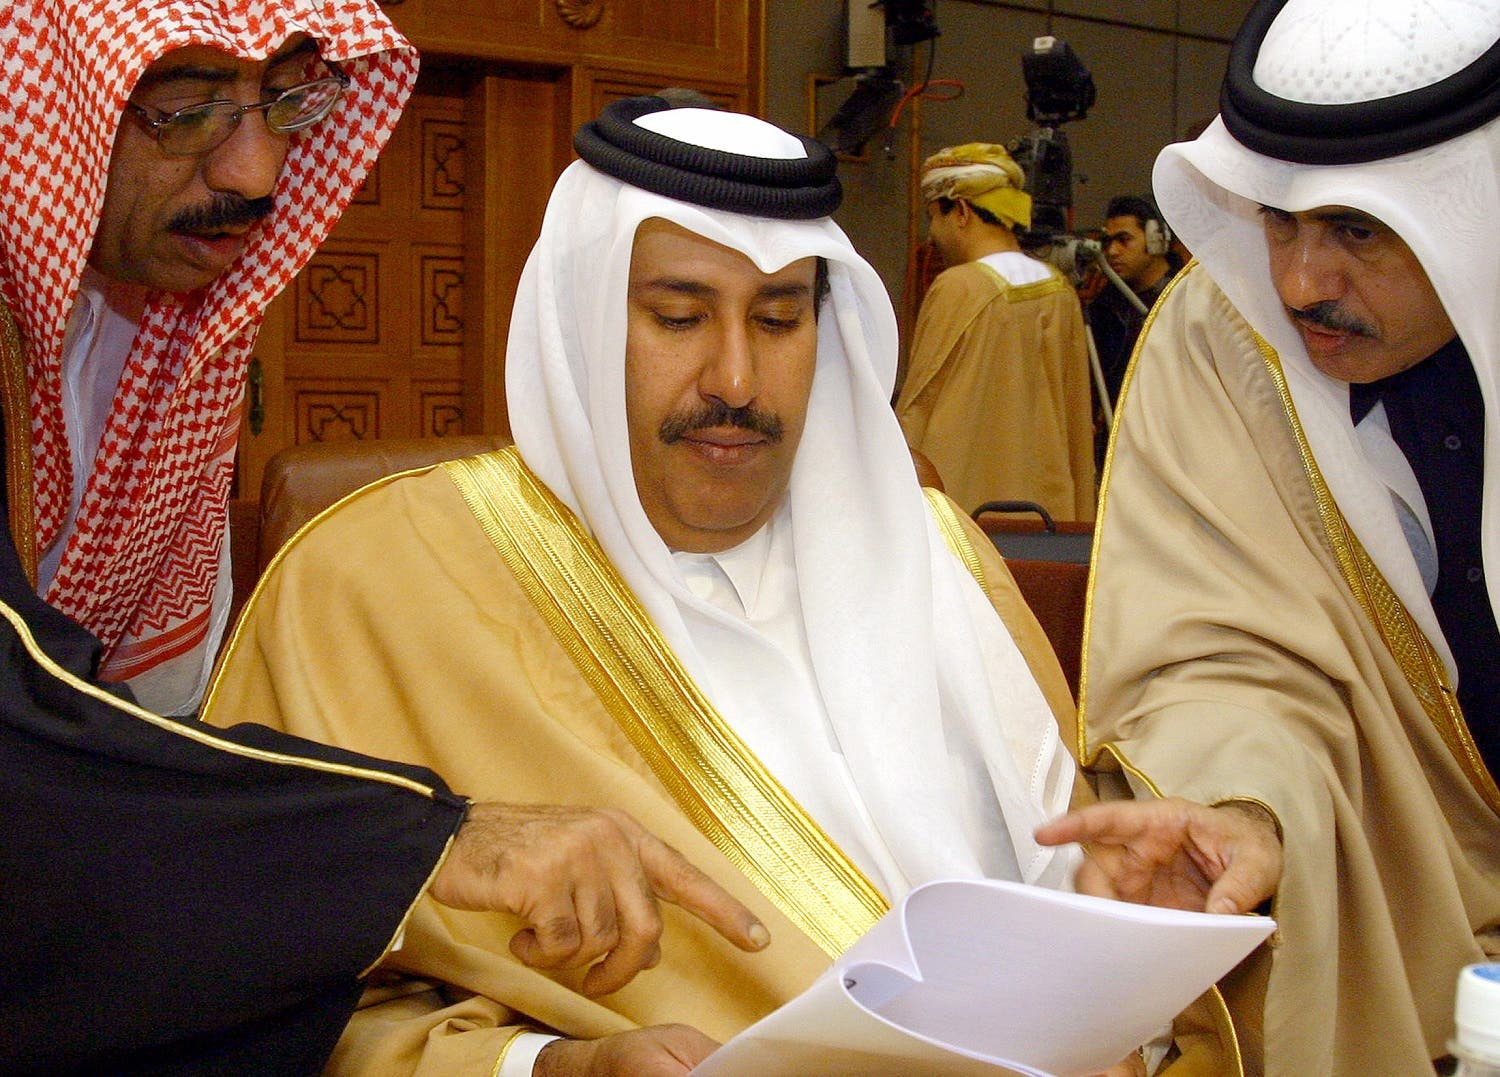 Qatar Foreign Minister Sheikh Hamad Bin Jasim (C) listens to his aides before a meeting at the Arab League headquarters in Cairo, January 13, 2005. (Reuters)